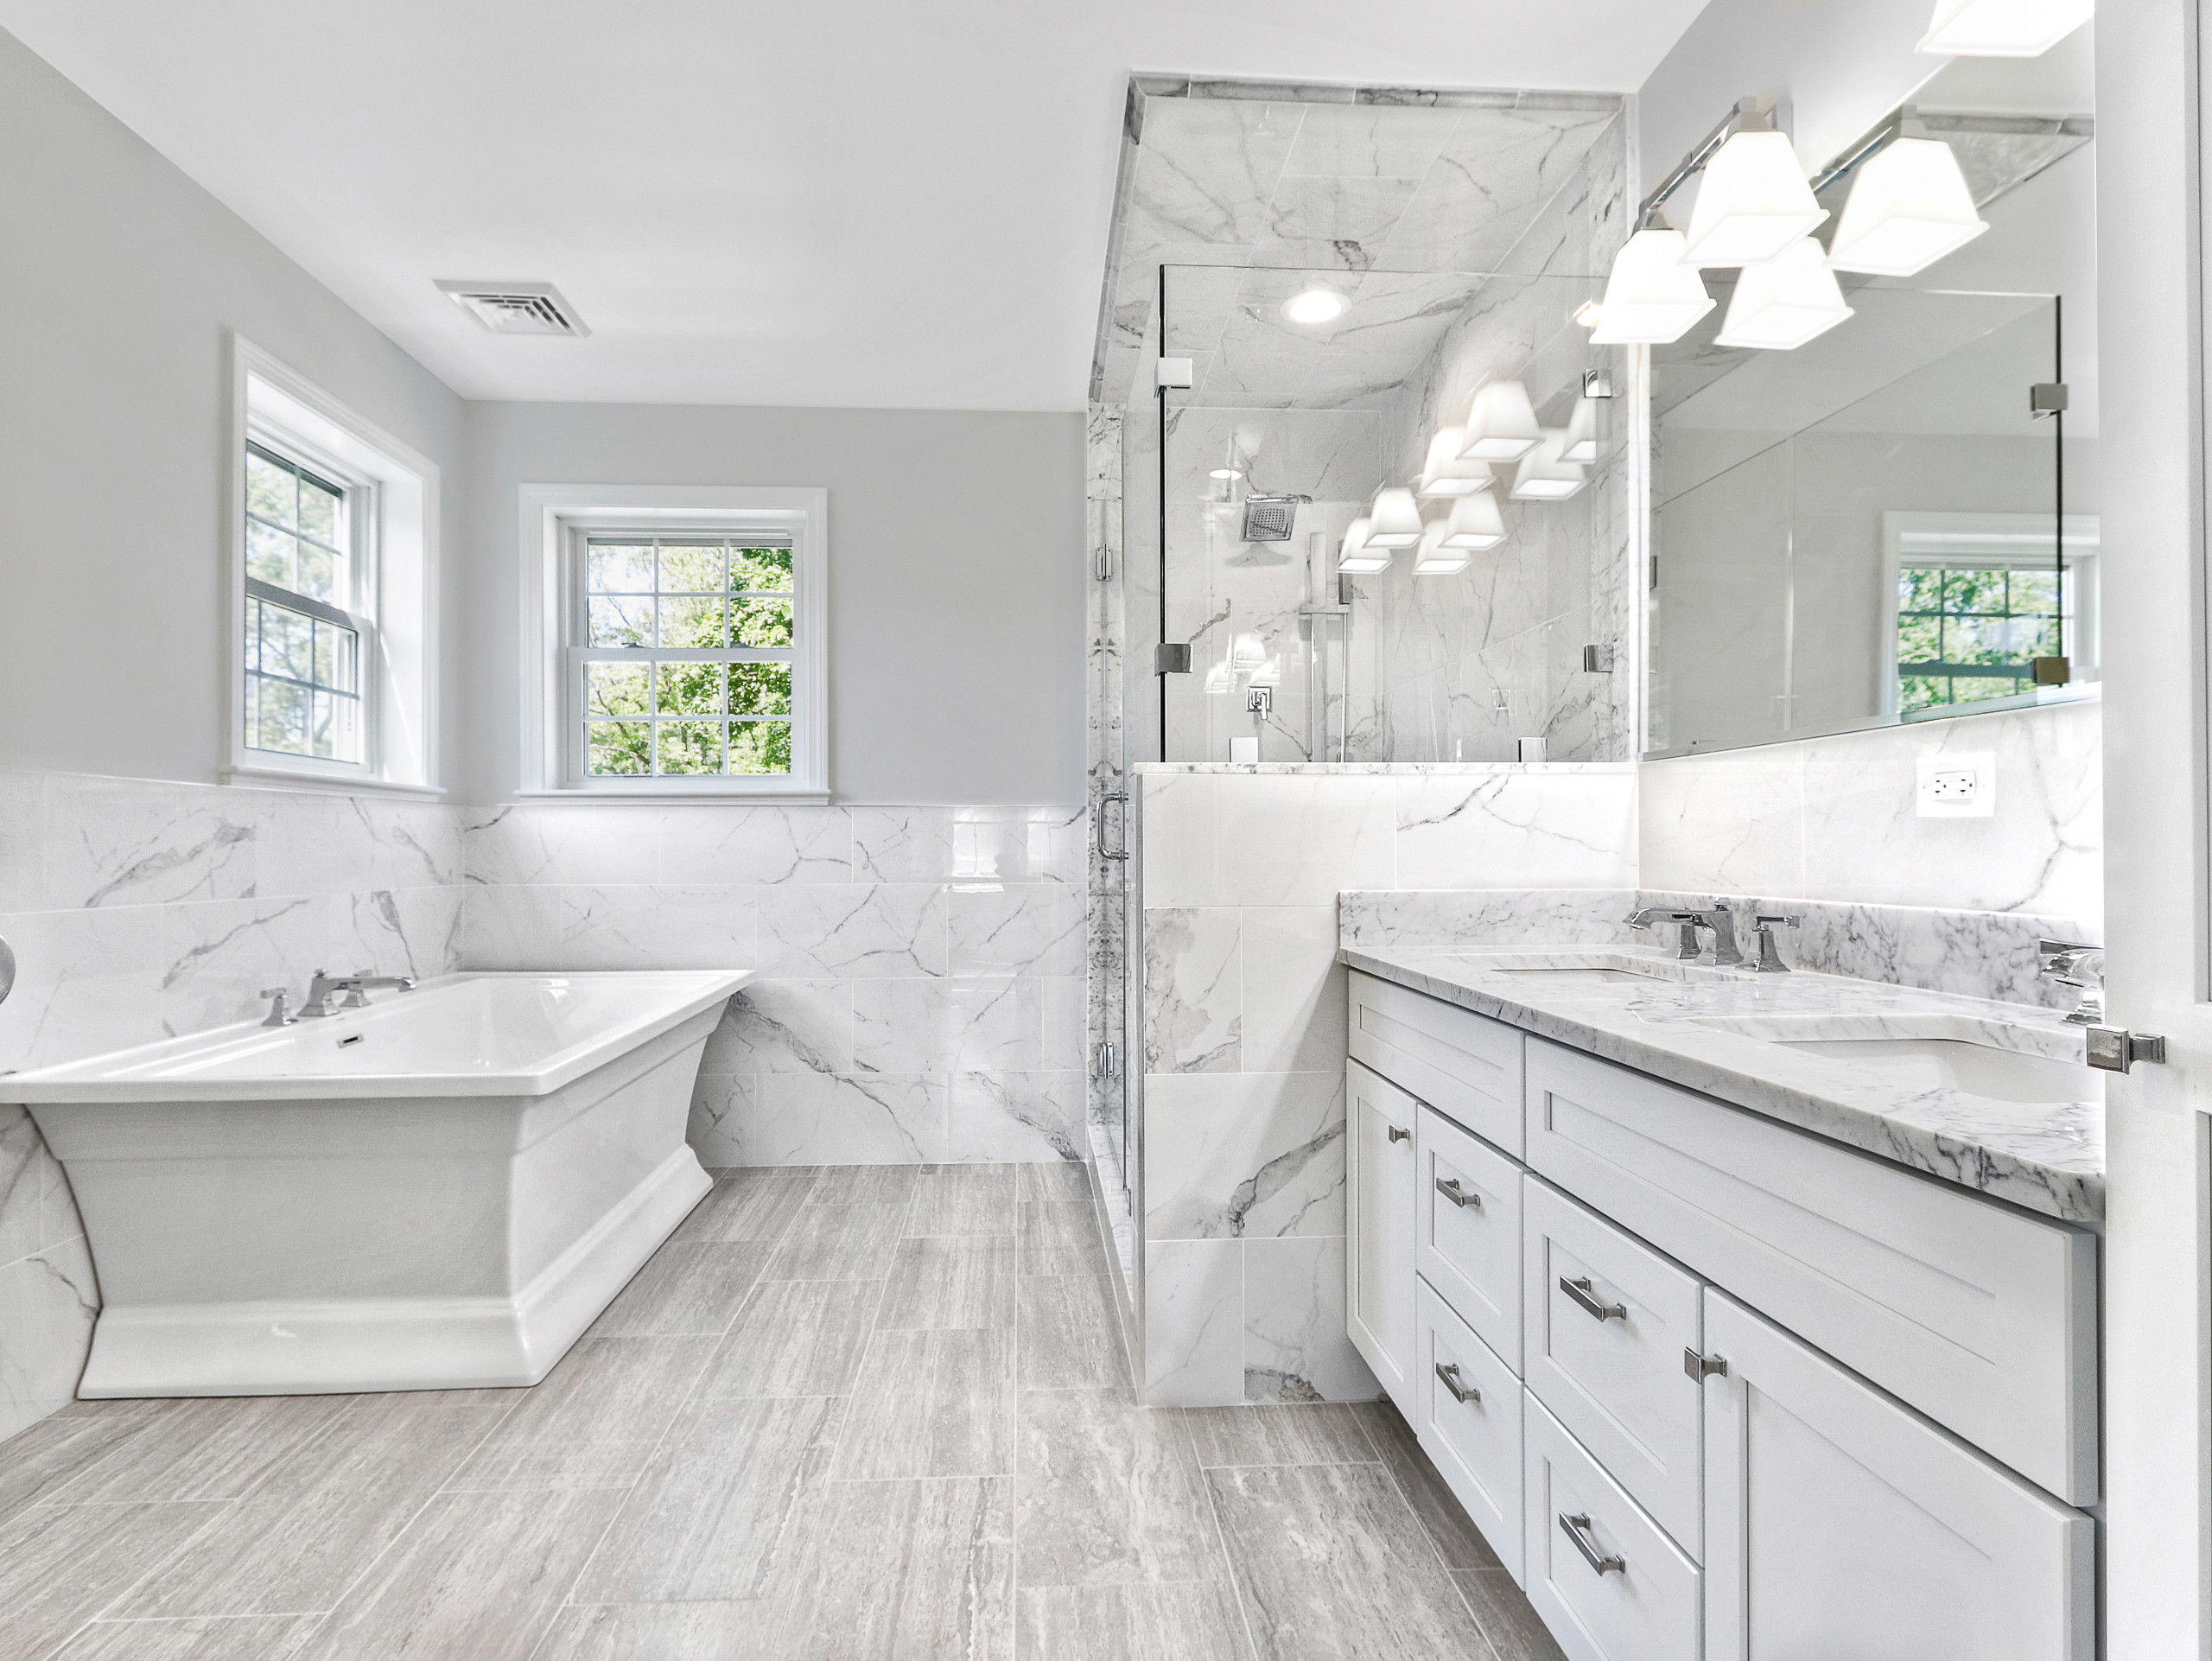 75 Beautiful Master Bathroom Pictures Ideas November 2020 Houzz